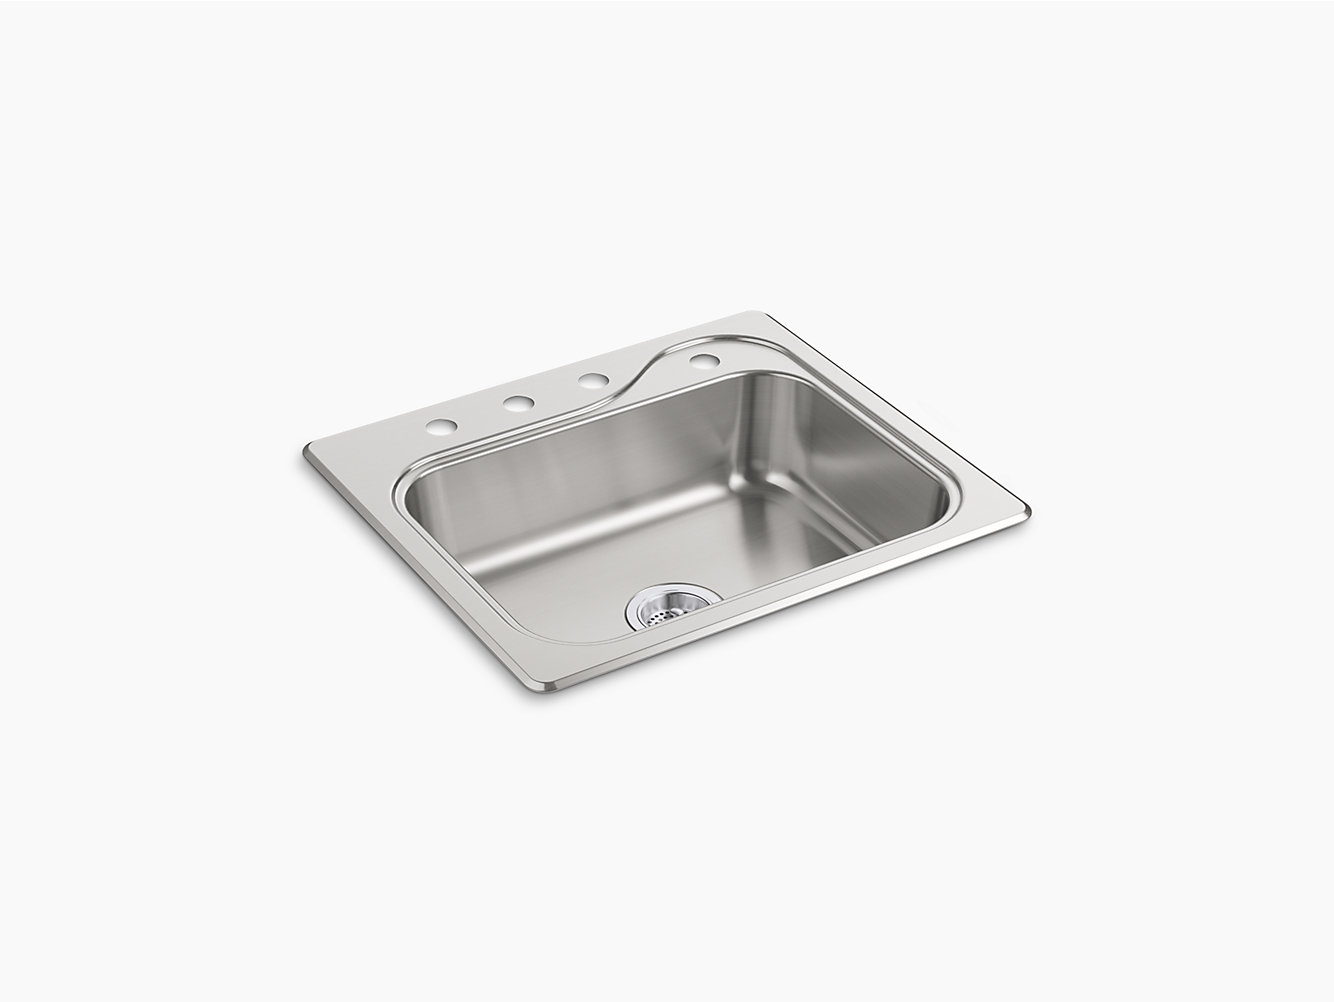 Kitchen Sink 25 X 22 Southhaven top mount single bowl kitchen sink 25 x 22 x 7 southhaven top mount single bowl kitchen sink 25 x 22 x 7 11404 4 na sterling workwithnaturefo